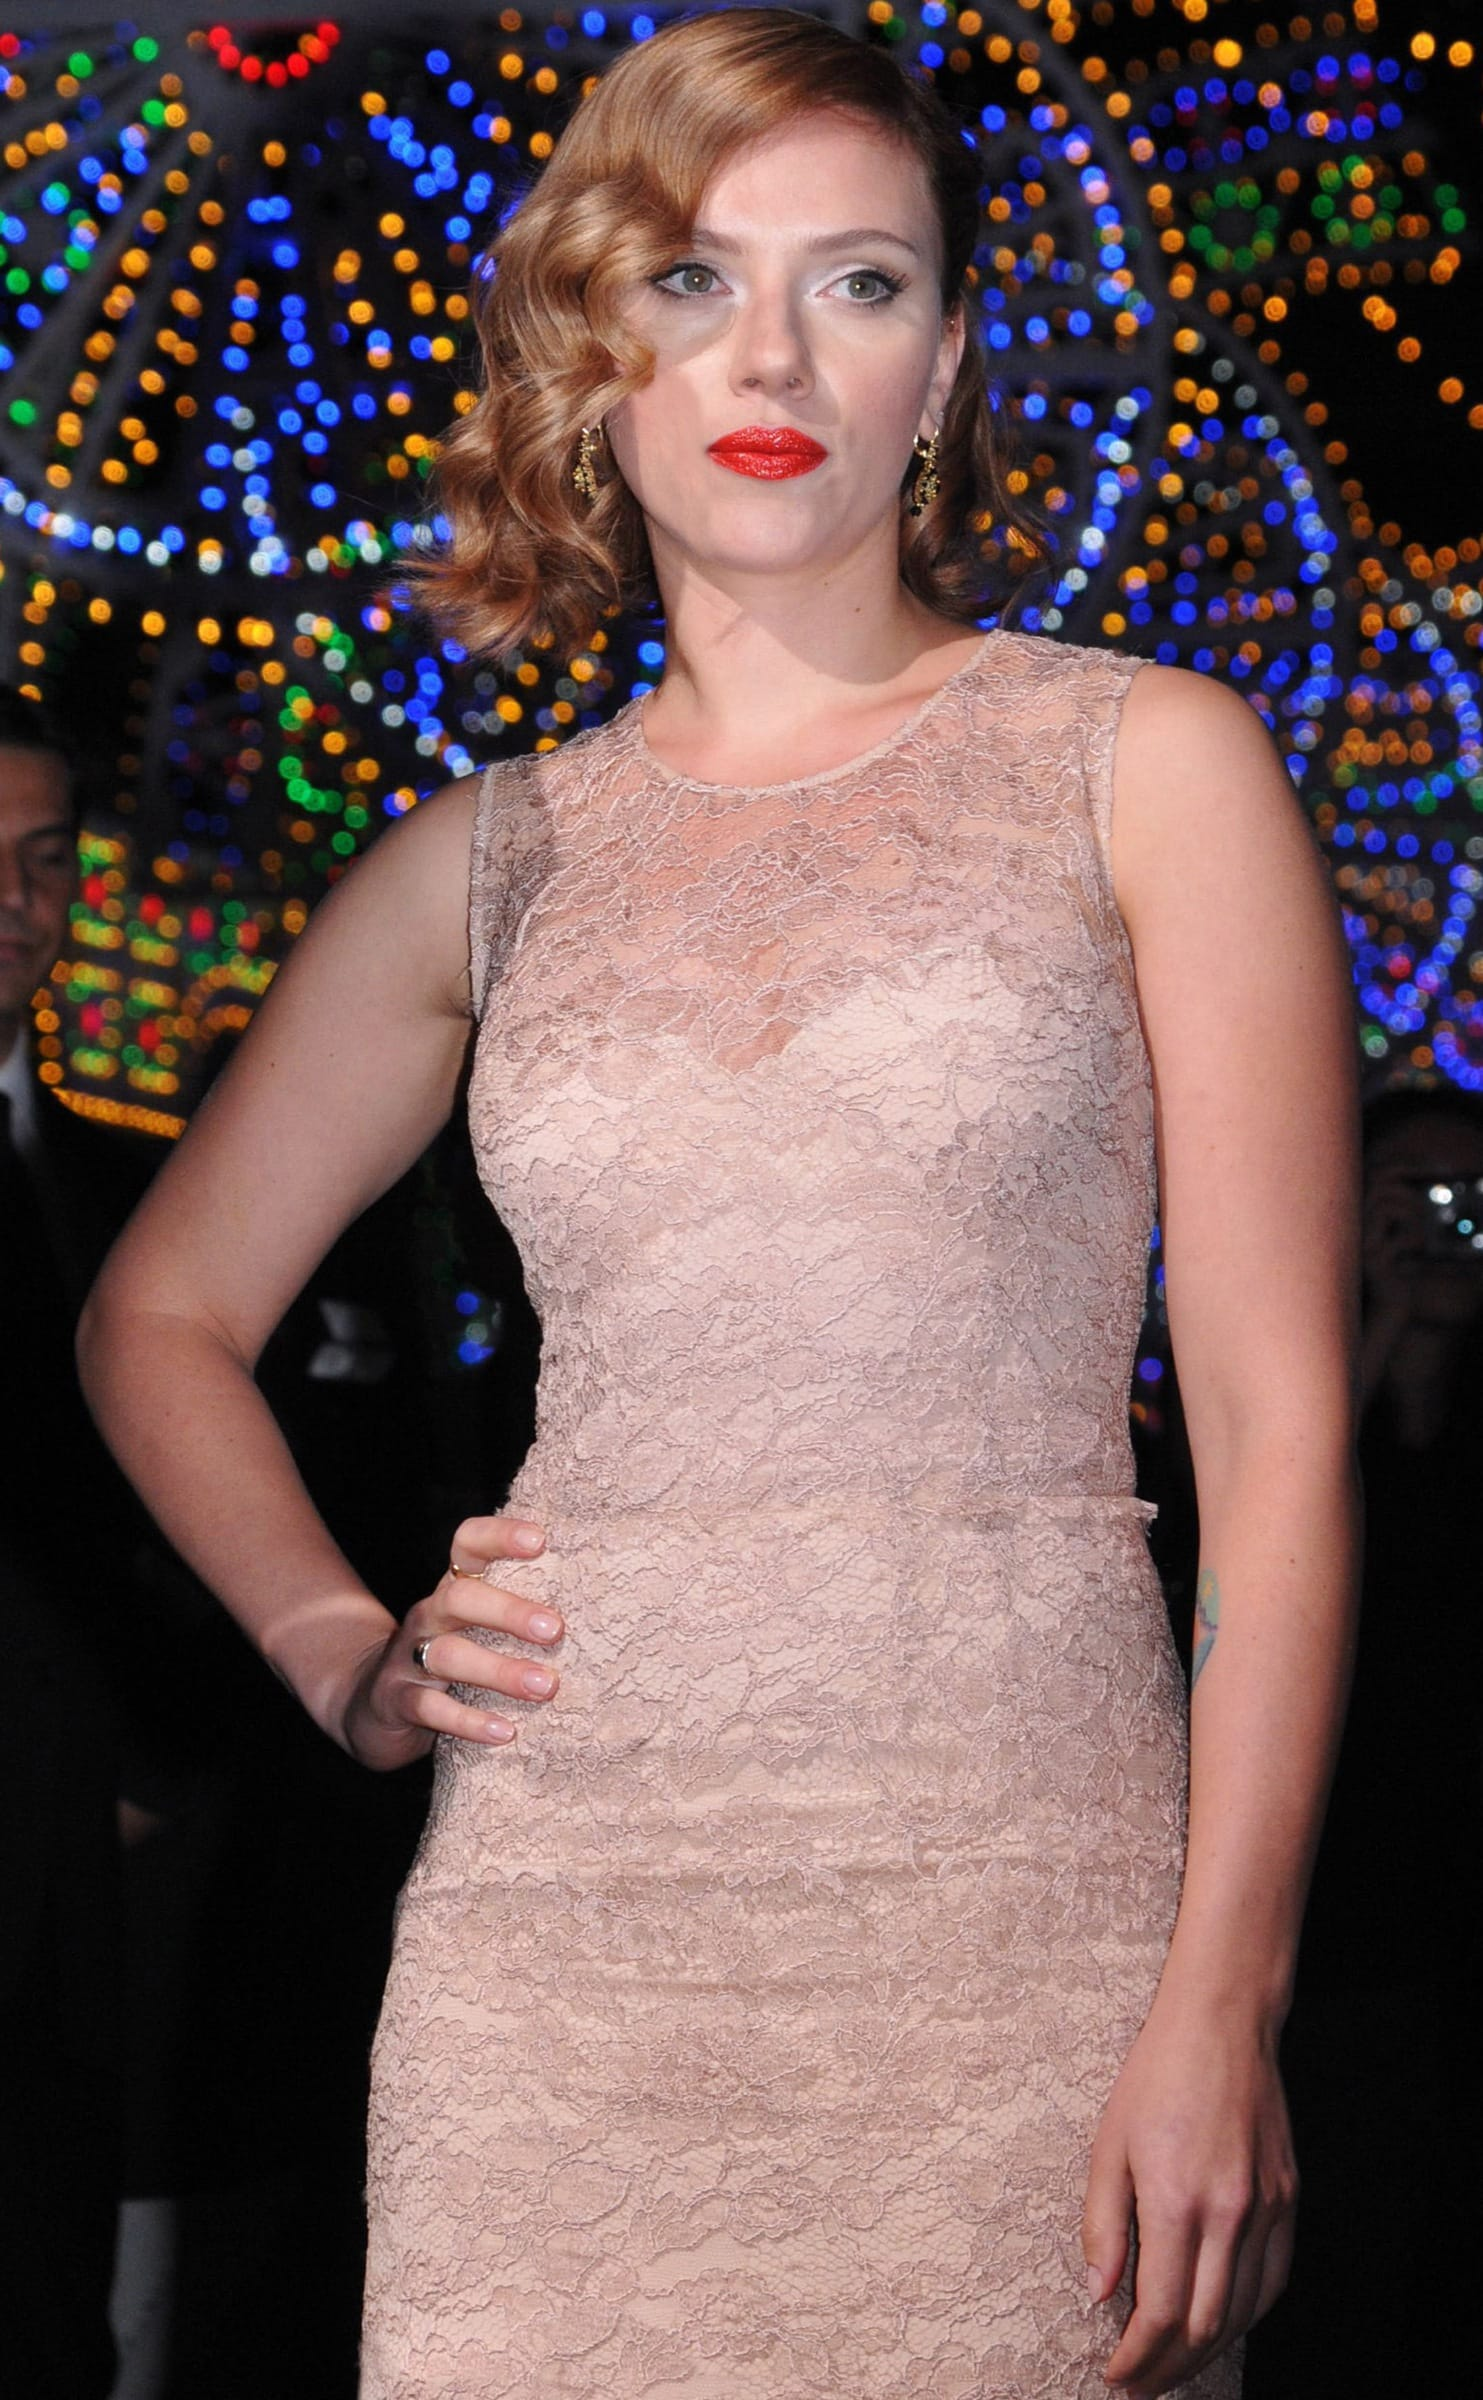 Scarlett Johansson Old Hollywood Hairstyle: Love it or Loathe It ...